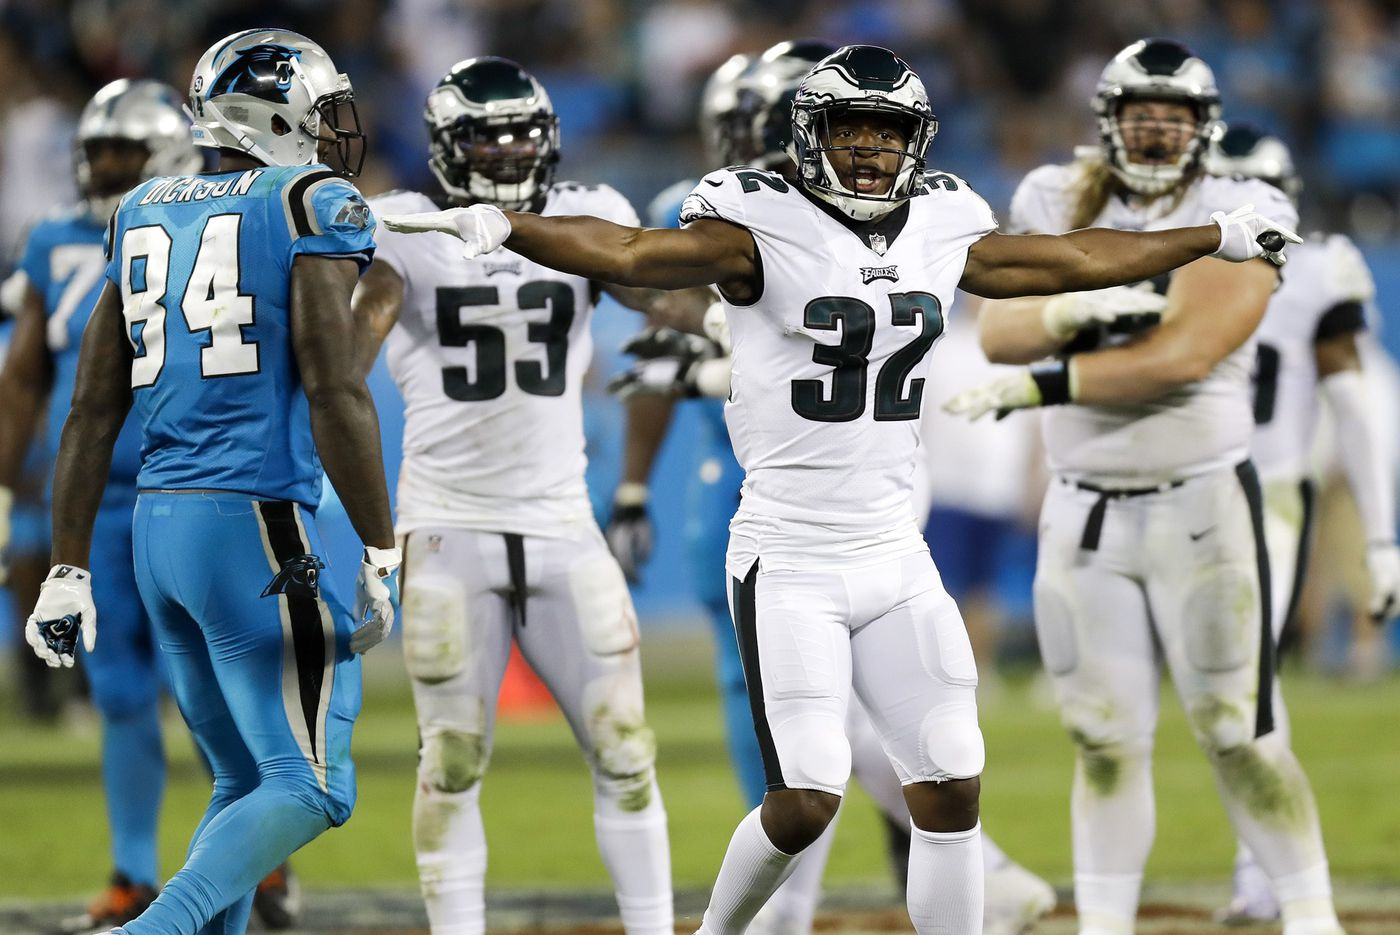 5 takeaways from Eagles brutual 21-17 loss to Panthers at home